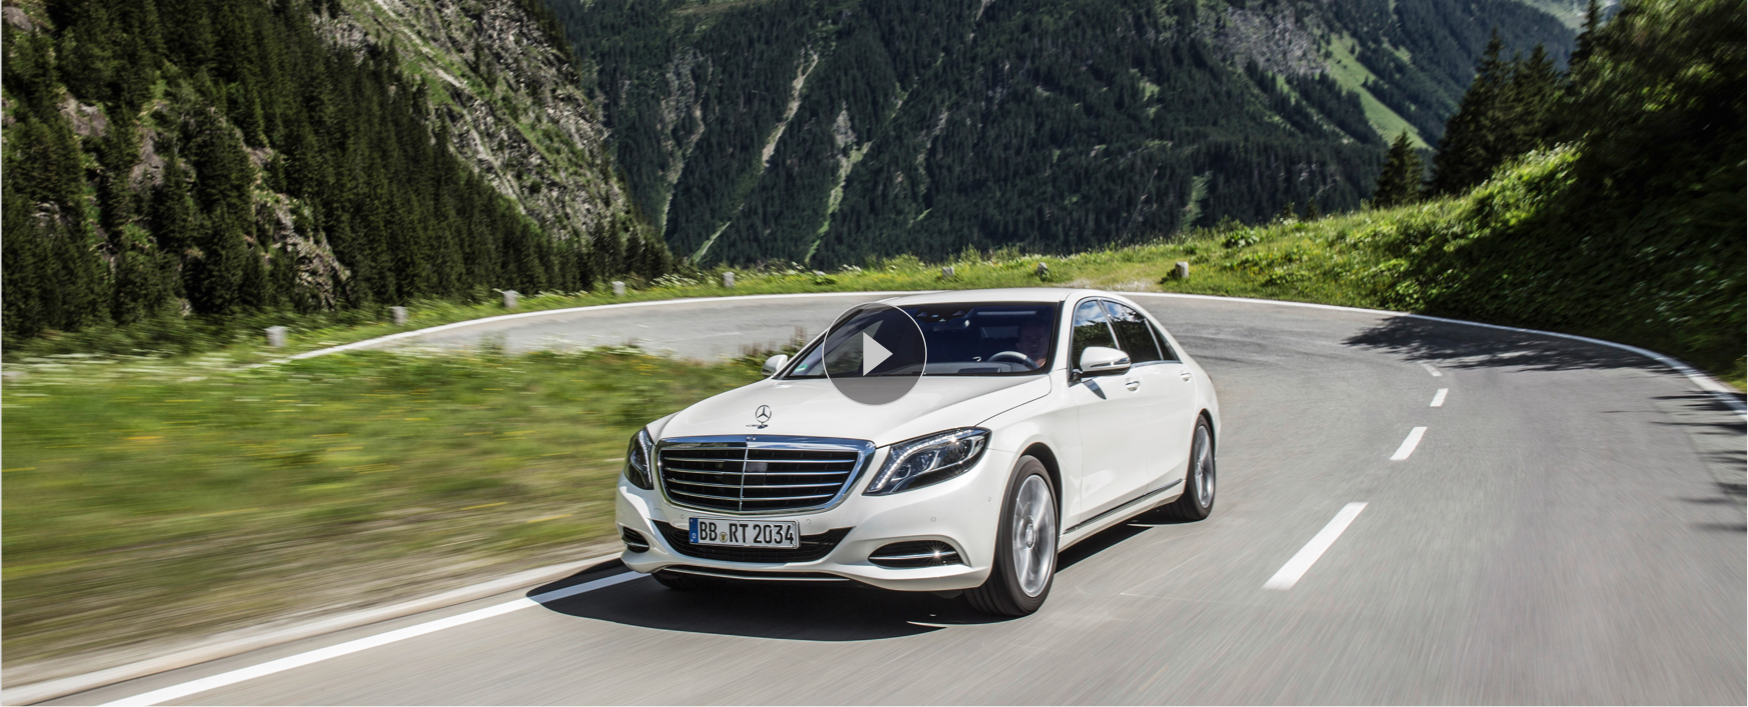 A white Mercedes-Benz driving on a curvy road among the mountains.